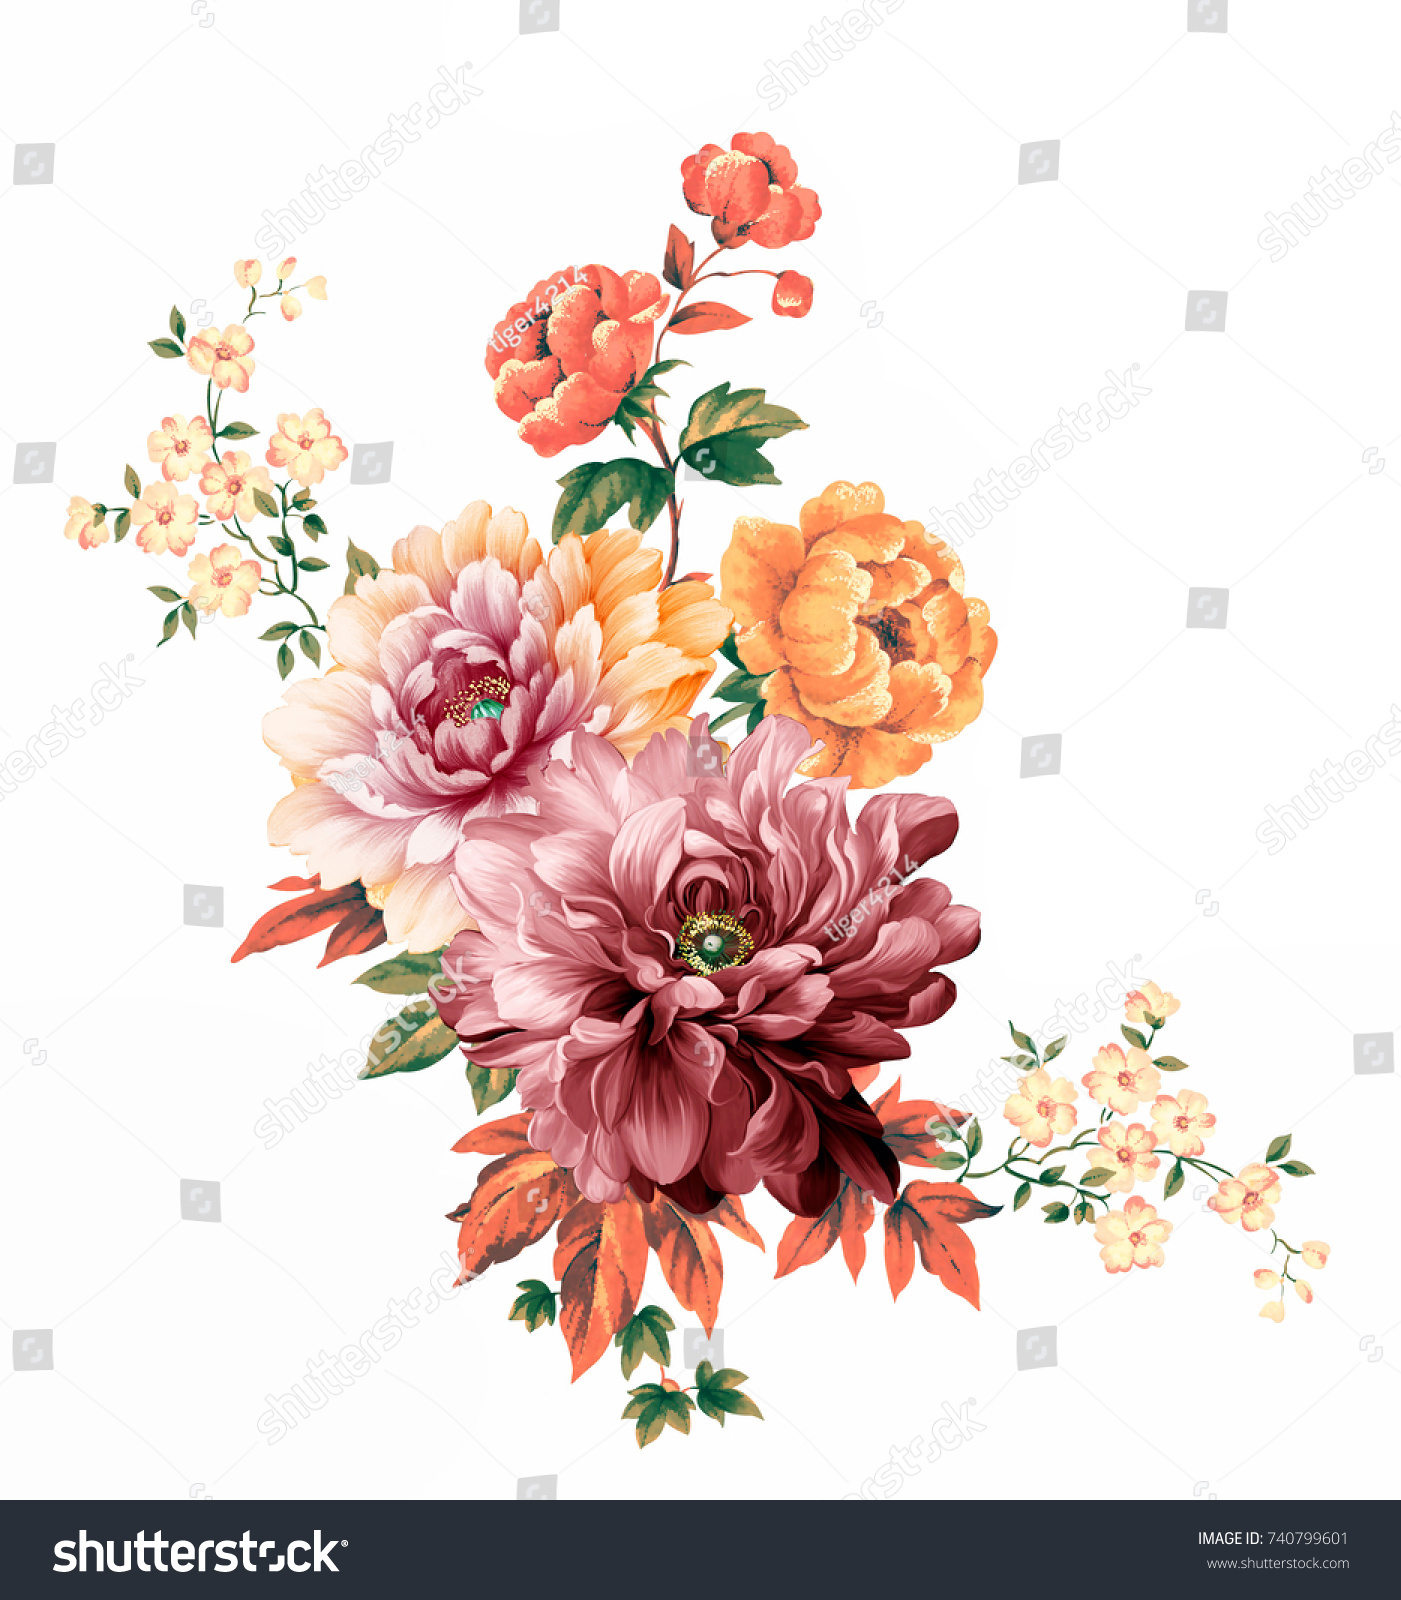 Flowers are full of romance the leaves and flowers art design